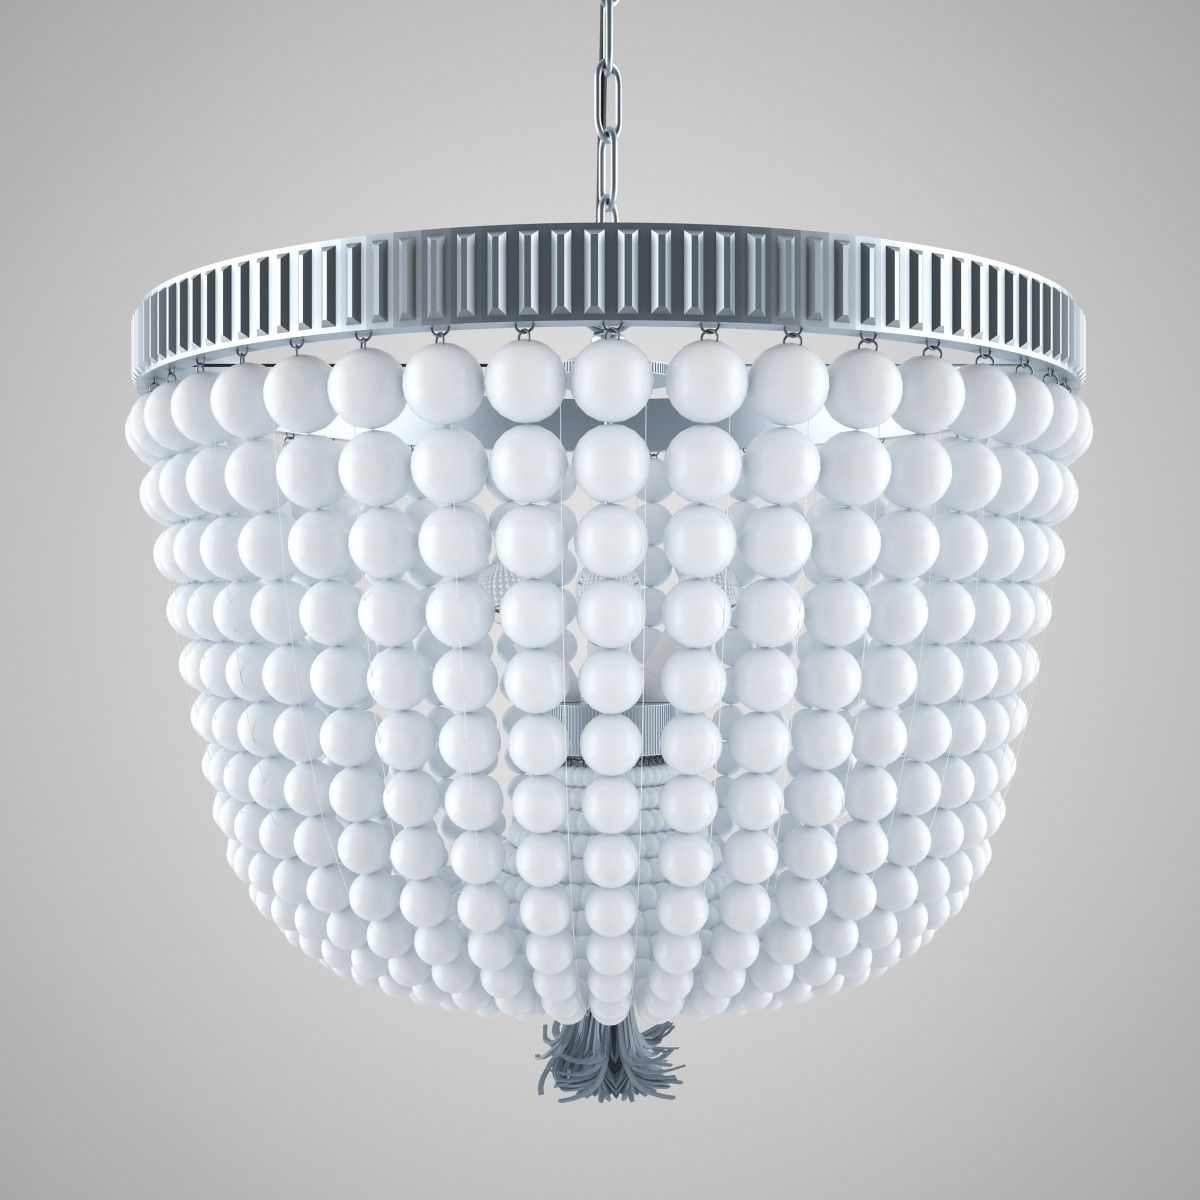 free chandelier 3d model | 3D models | Pinterest | 3d